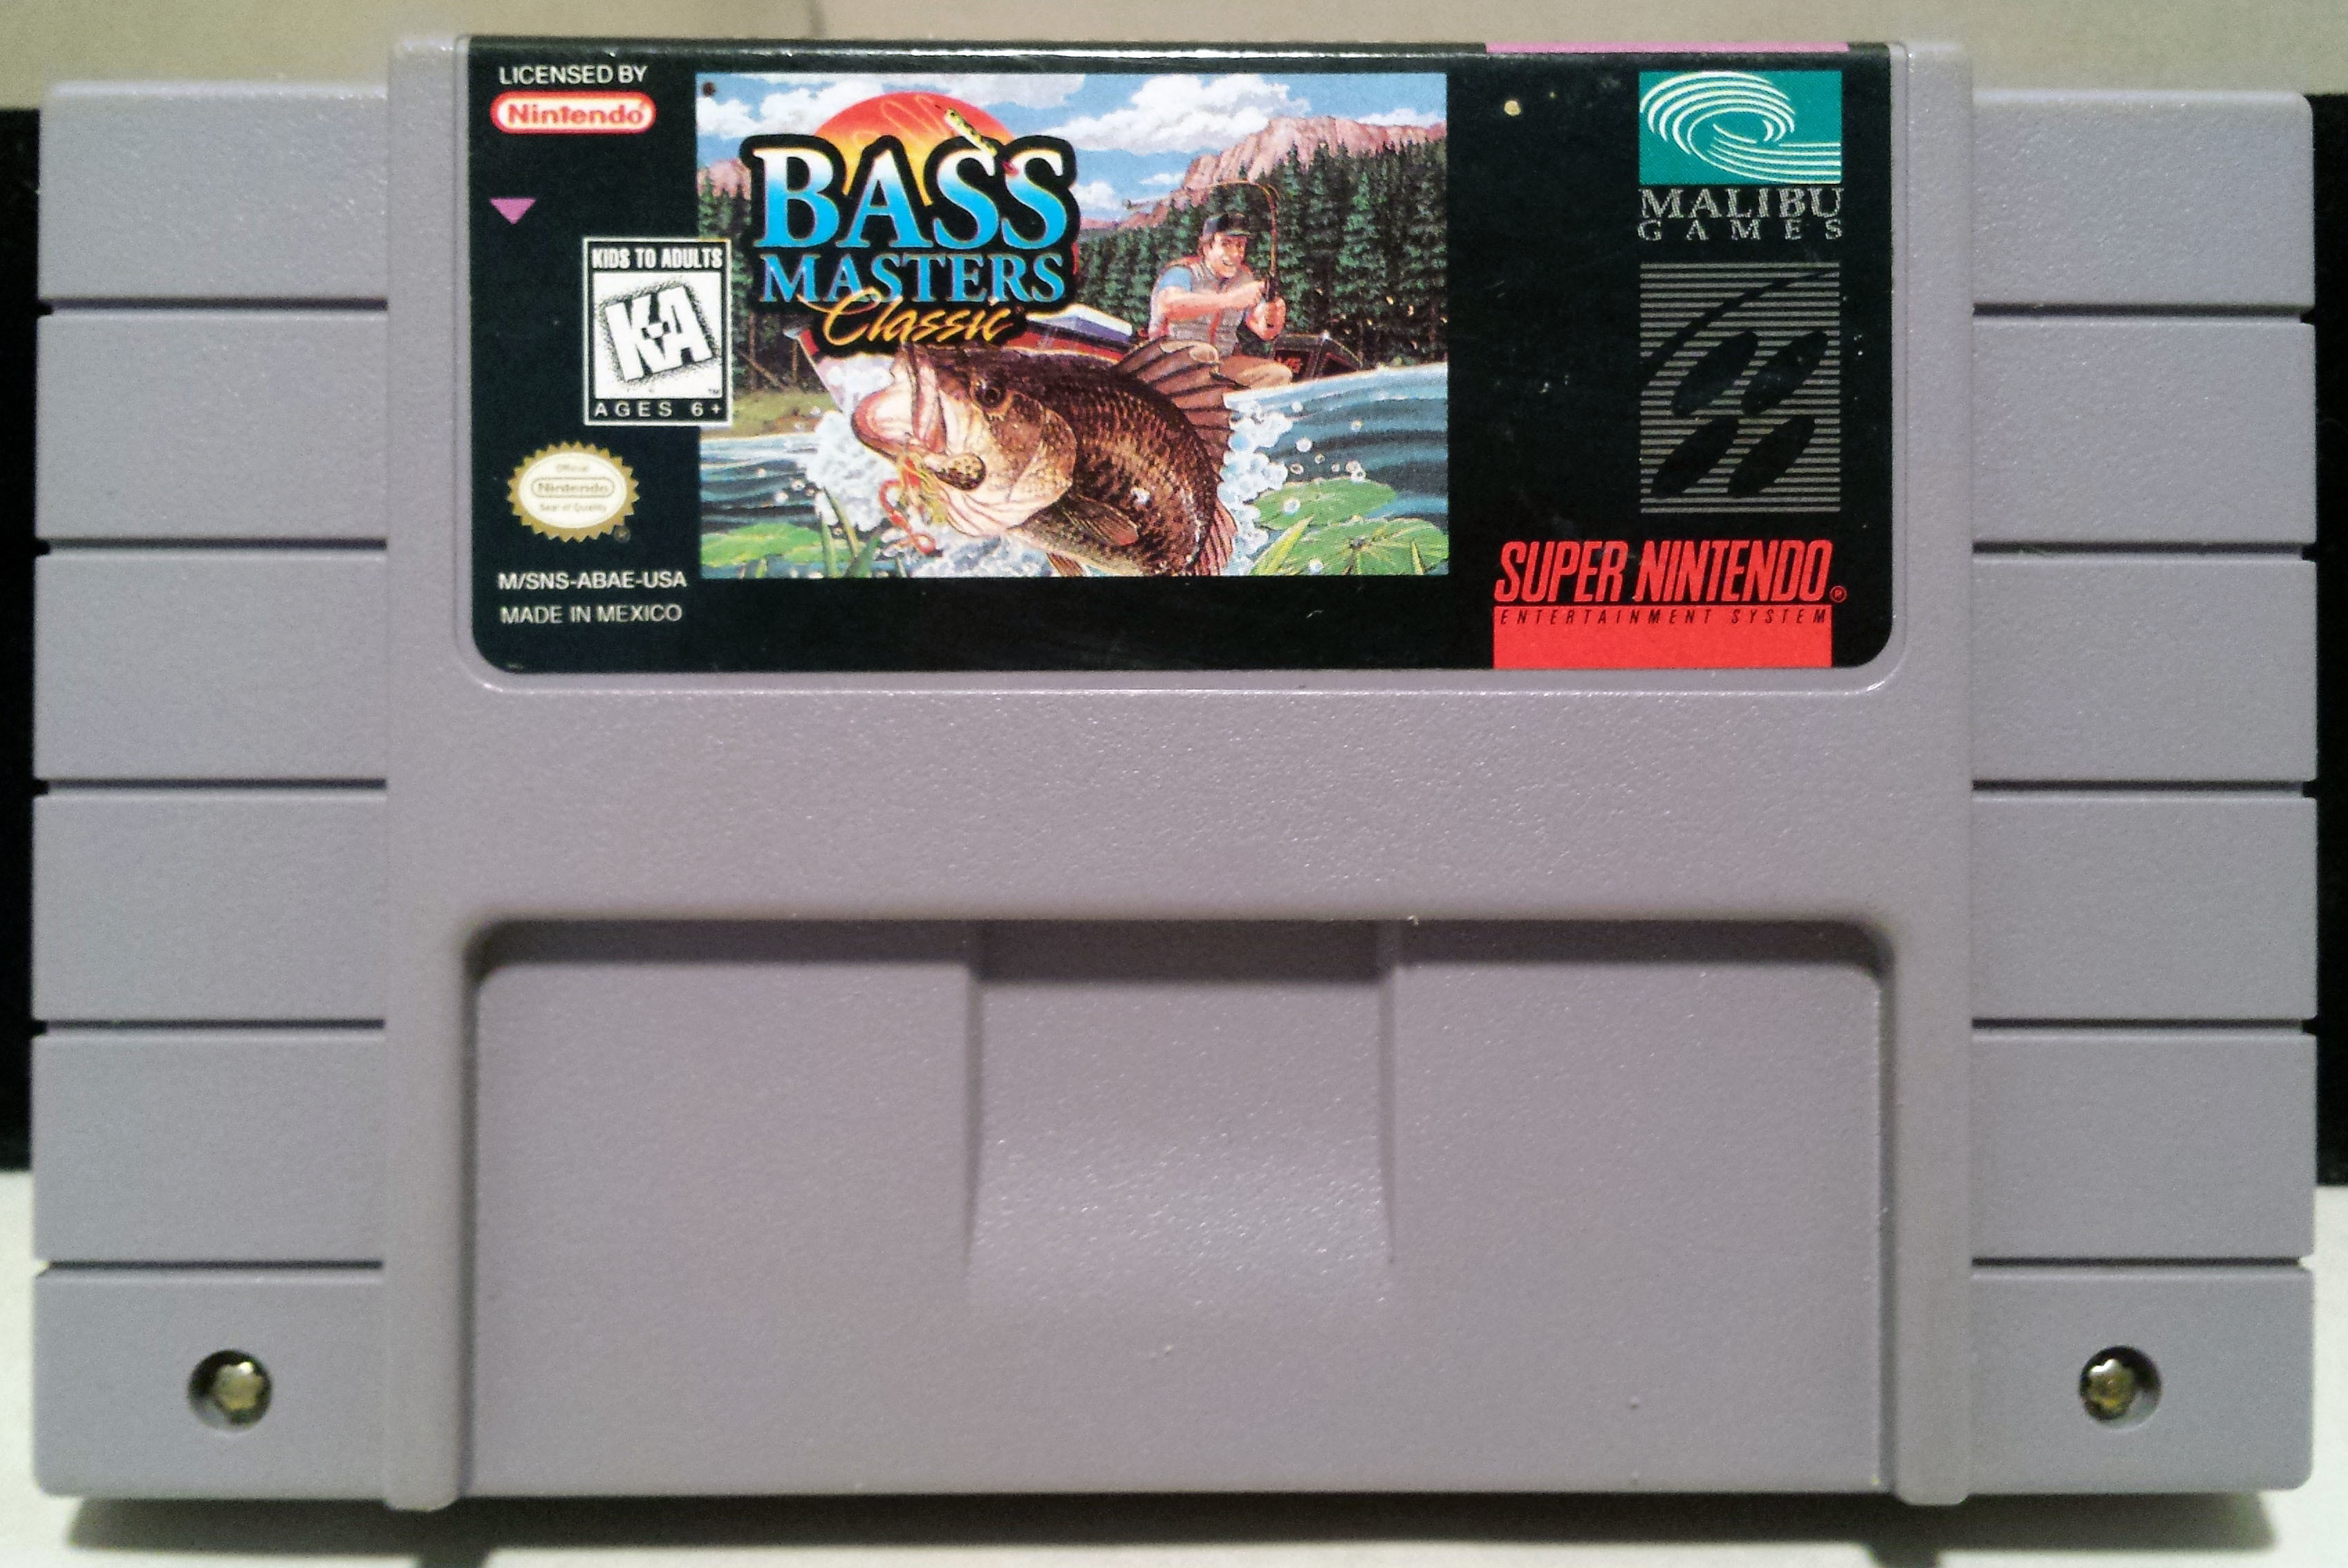 SNES Bass Masters Classic (1996 Super Nintendo) -CART ONLY